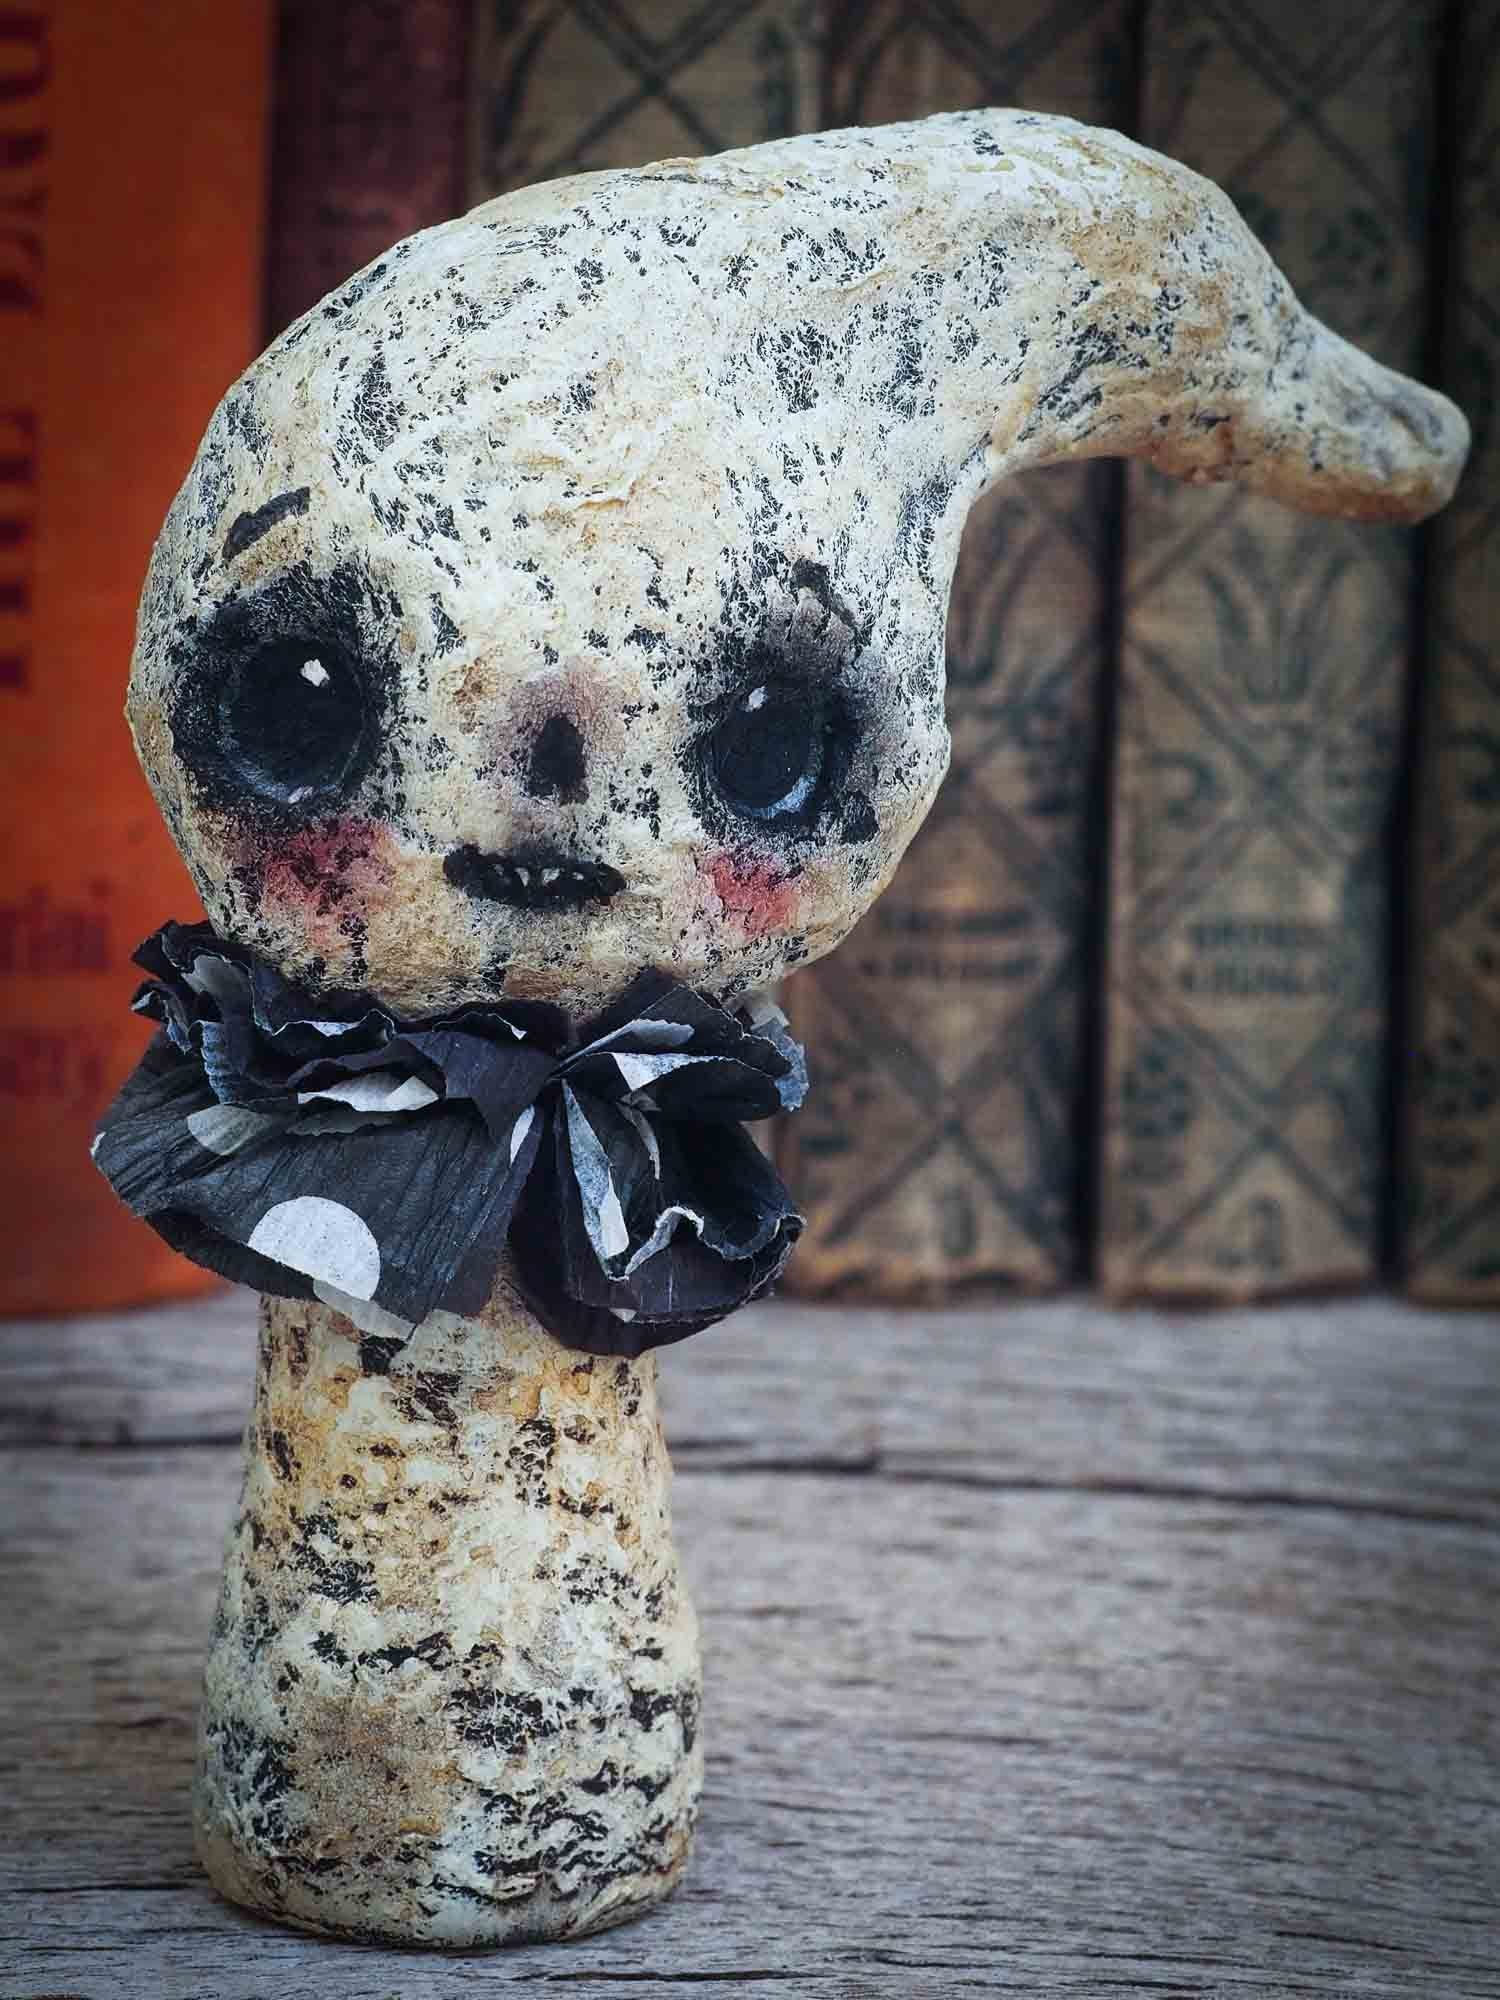 A super cute ghost ghoul Halloween mini figurine by Danita. This folk art and crafts mini art doll is kawaii kokeshi in style, handmade for Halloween home decor decorations by Danita Art.